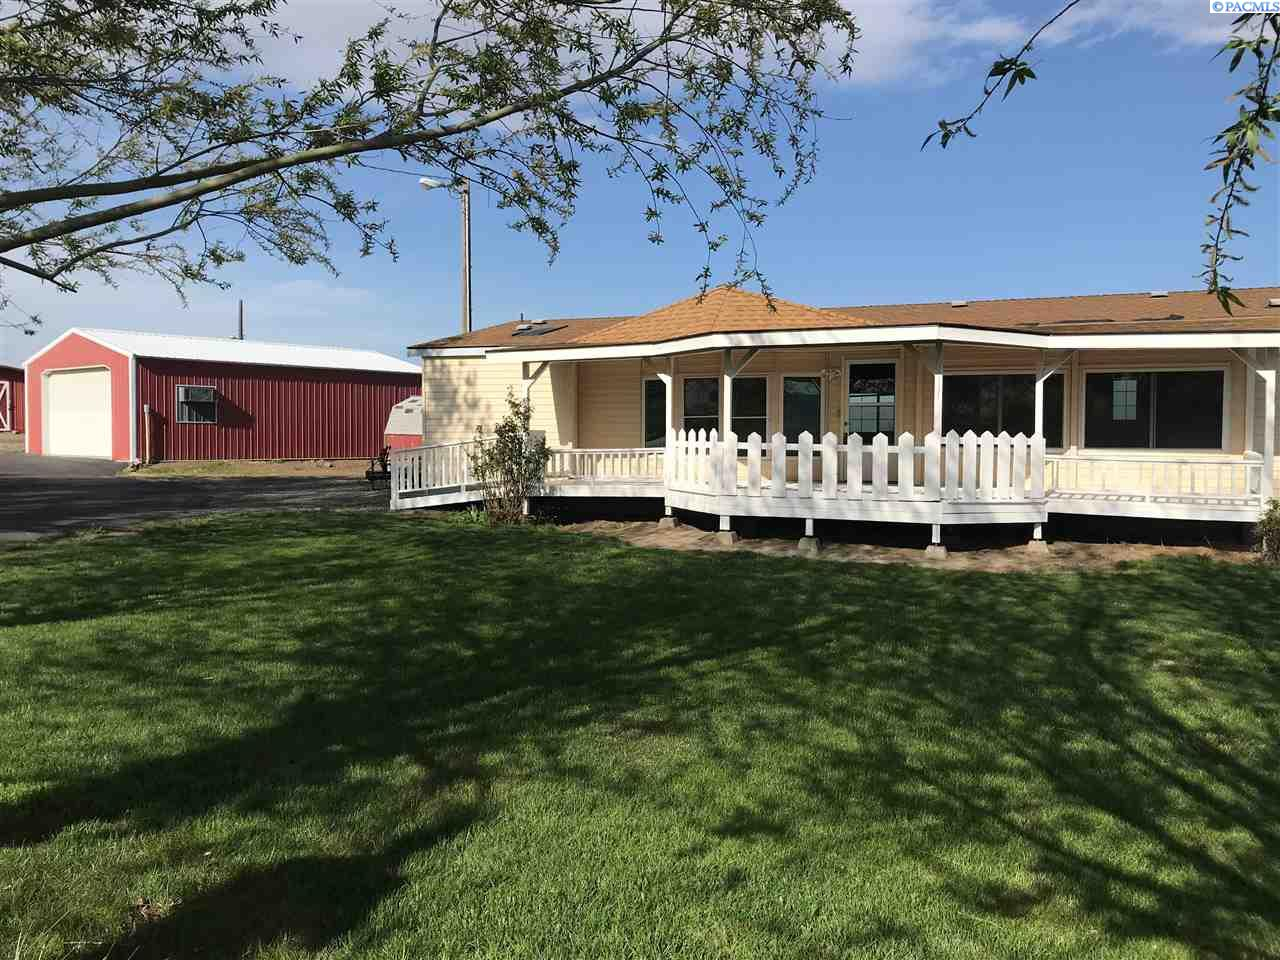 Manufactured Home for Sale at 61305 N Whan Road Benton City, Washington 99320 United States